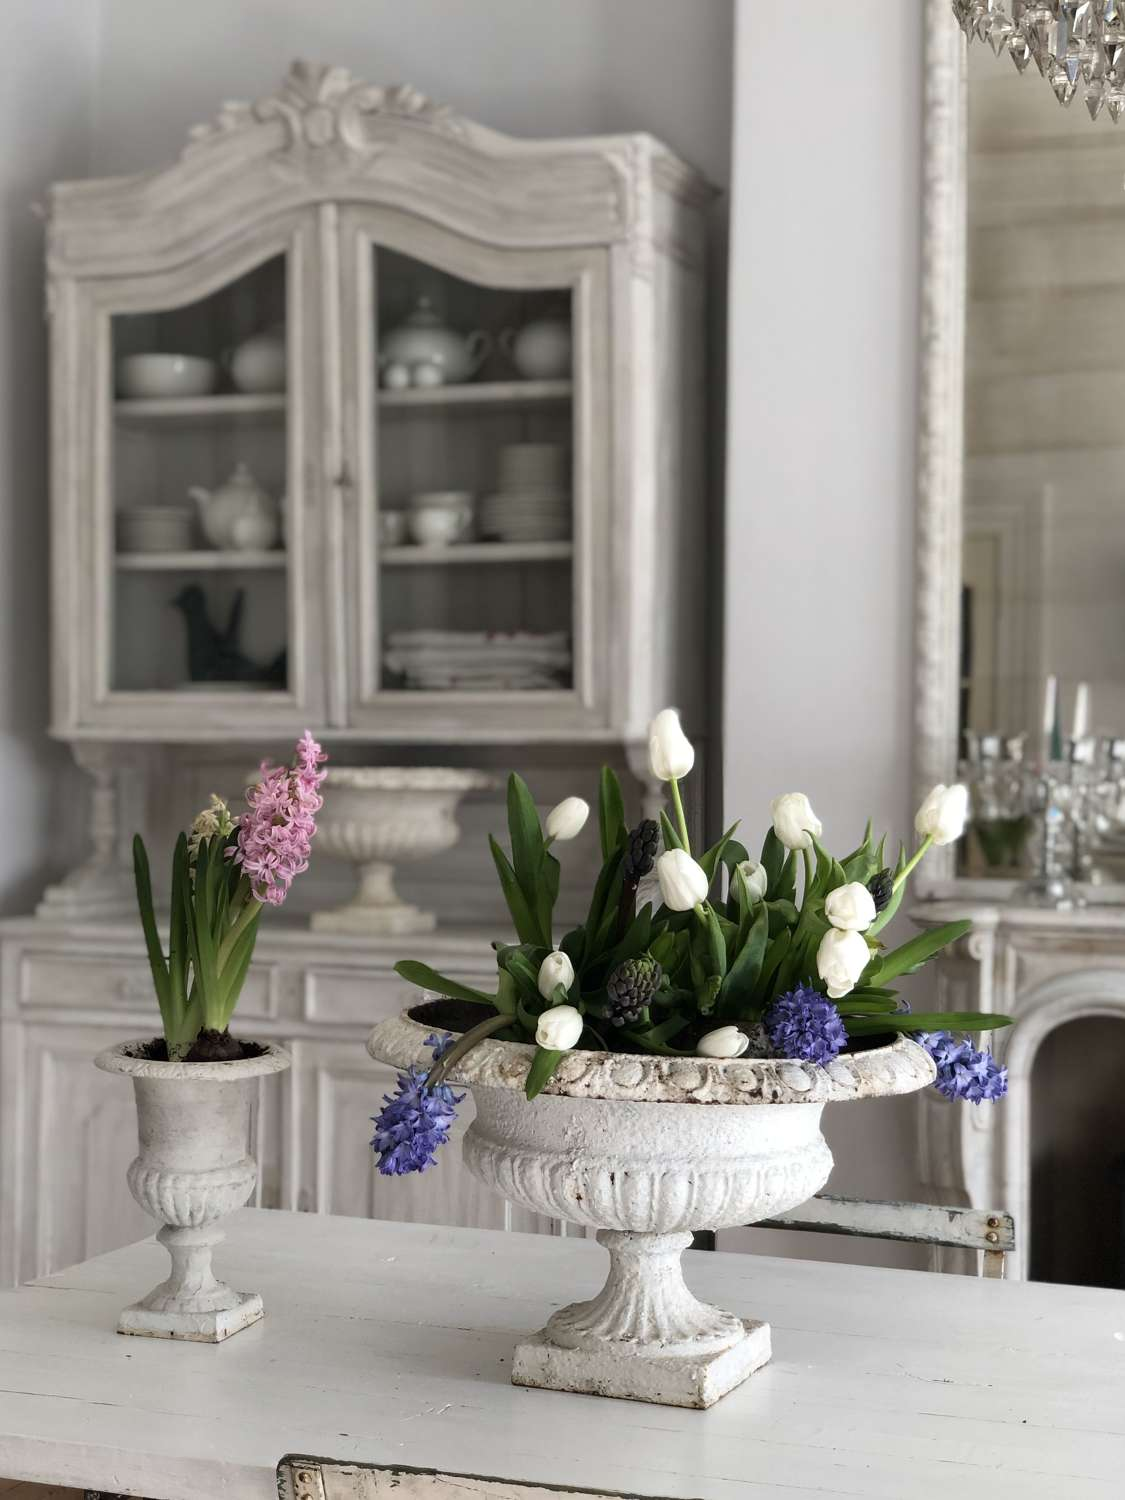 Antique French planters